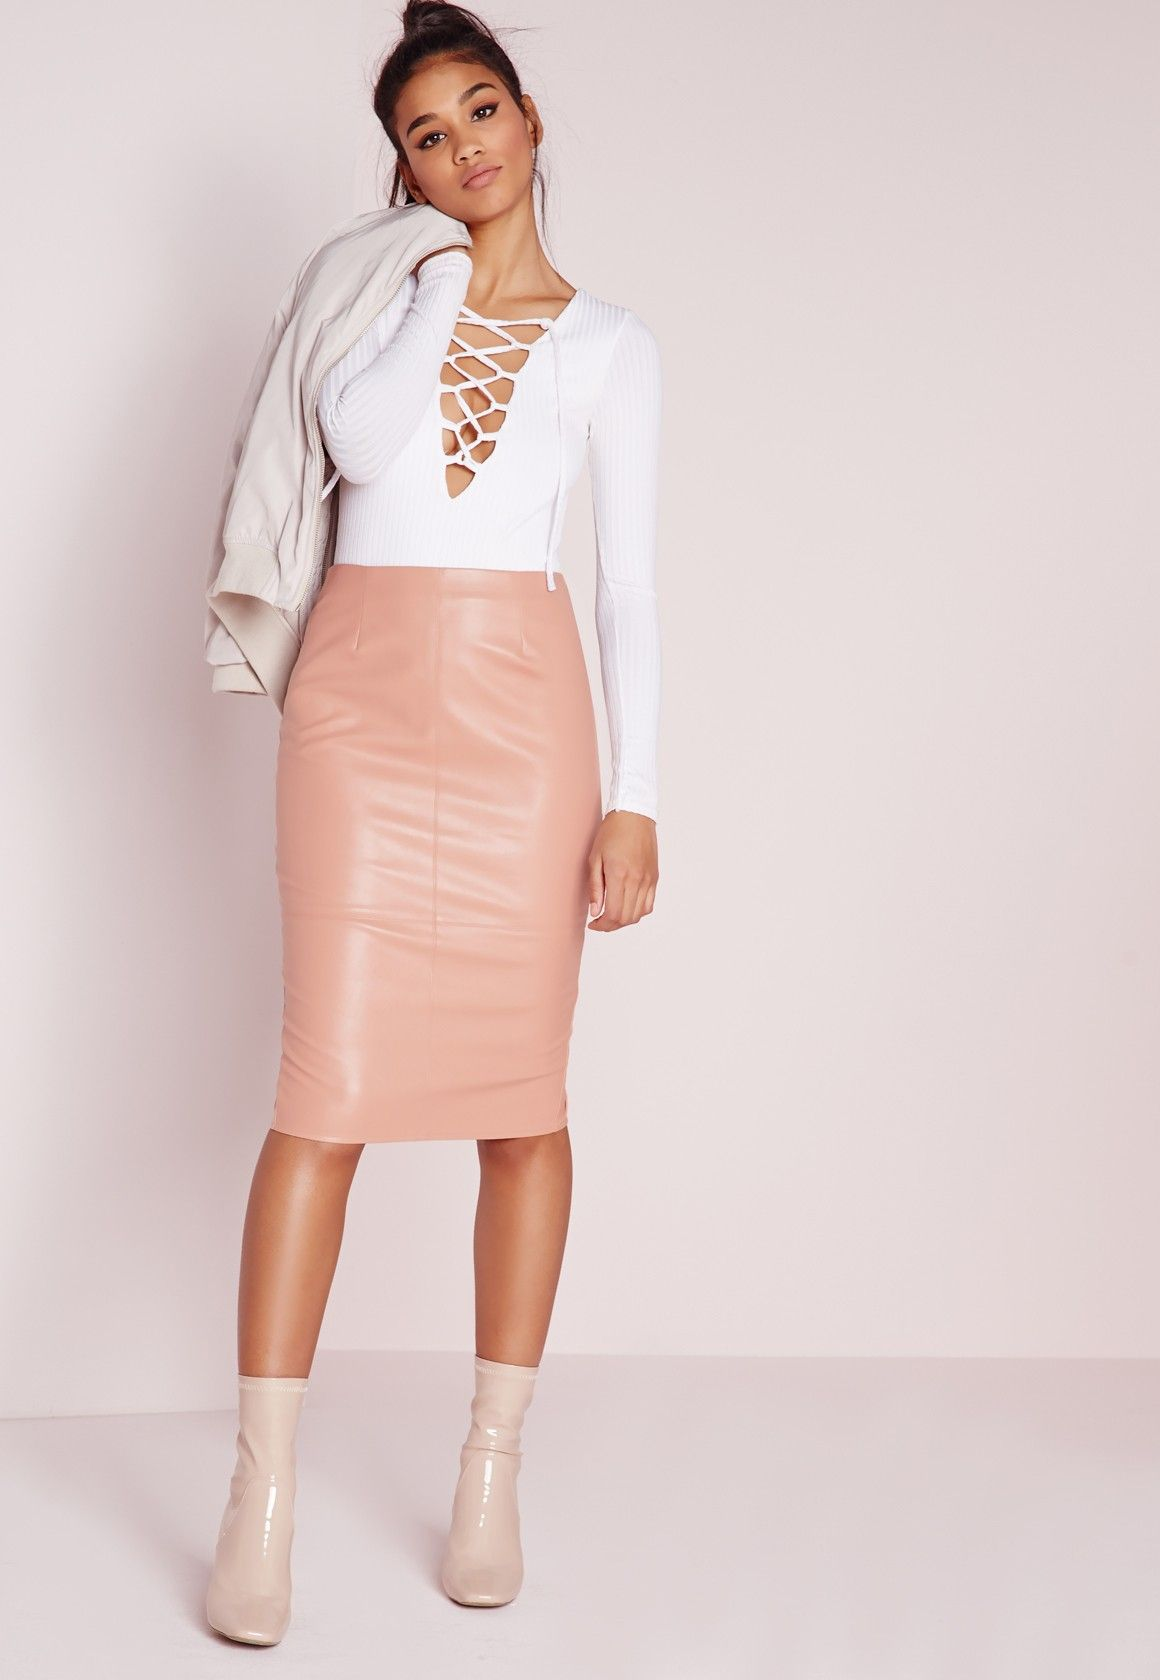 538d36f55 Missguided - Faux Leather Seam Detail Midi Skirt Nude | Leather ...